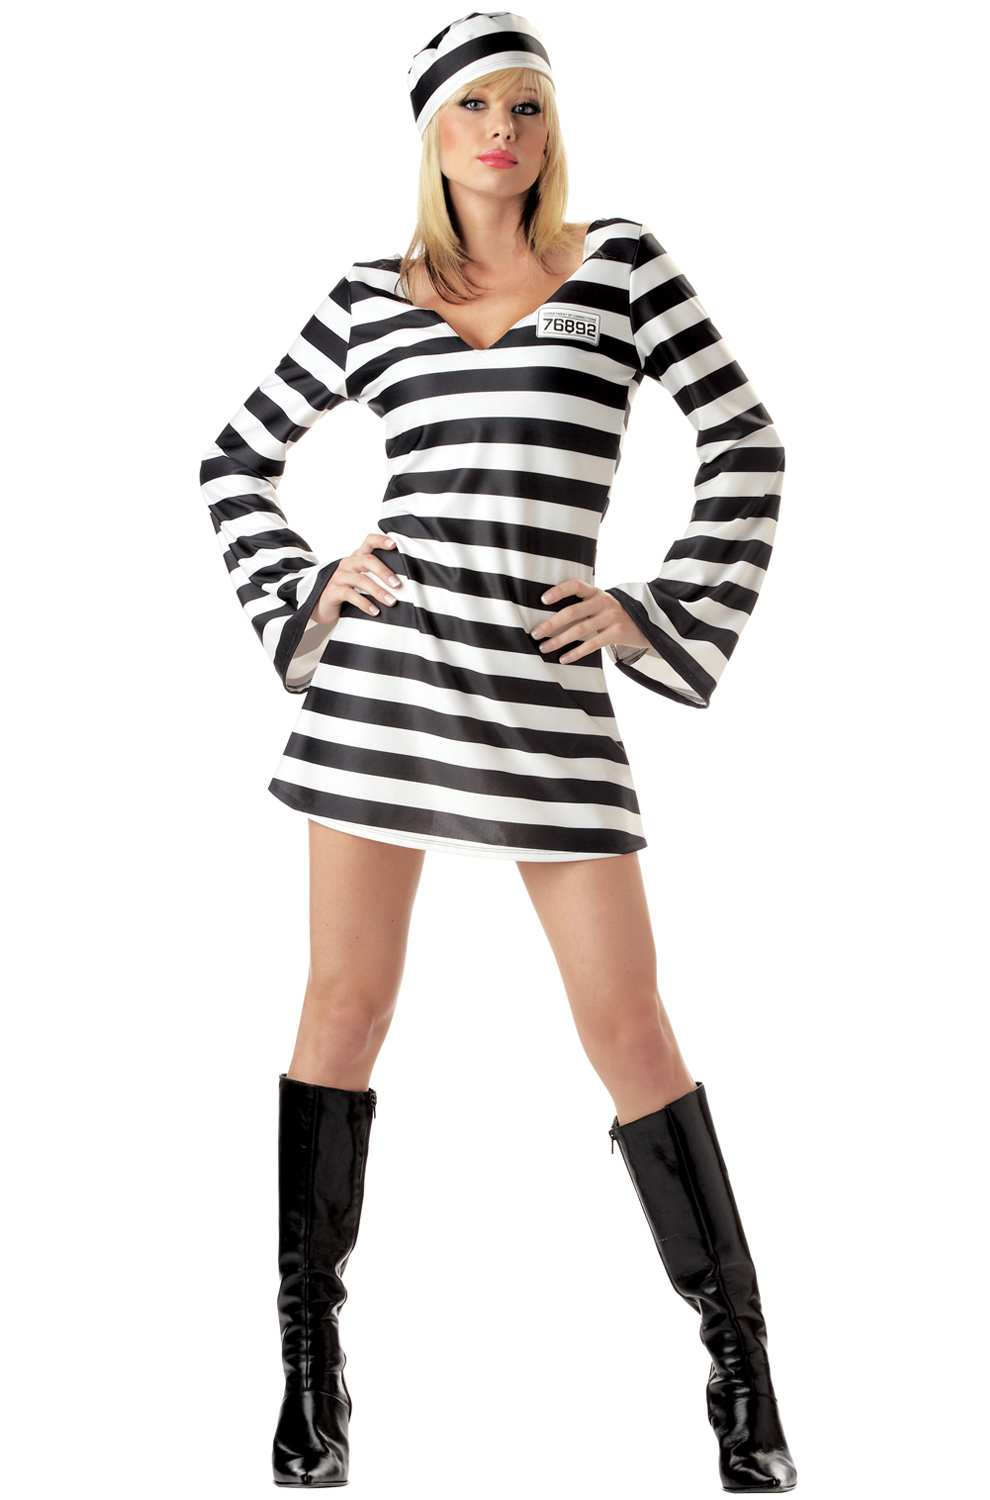 Sexy Women Jail Prison Convict Chick Adult Halloween ...